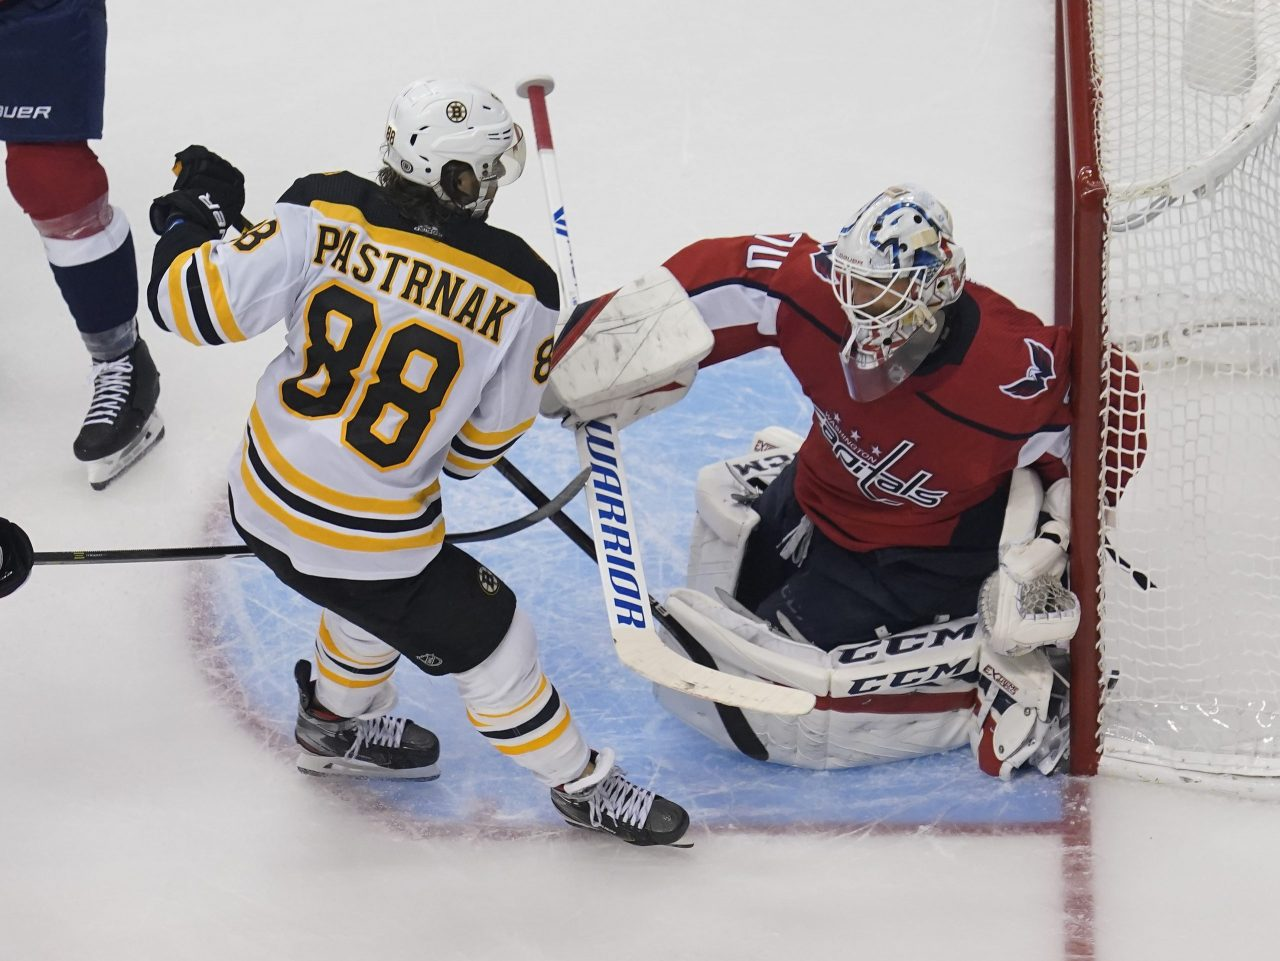 Nhl Eastern Conference Qualifications Boston Bruins At Washington Capitals Awful Announcing